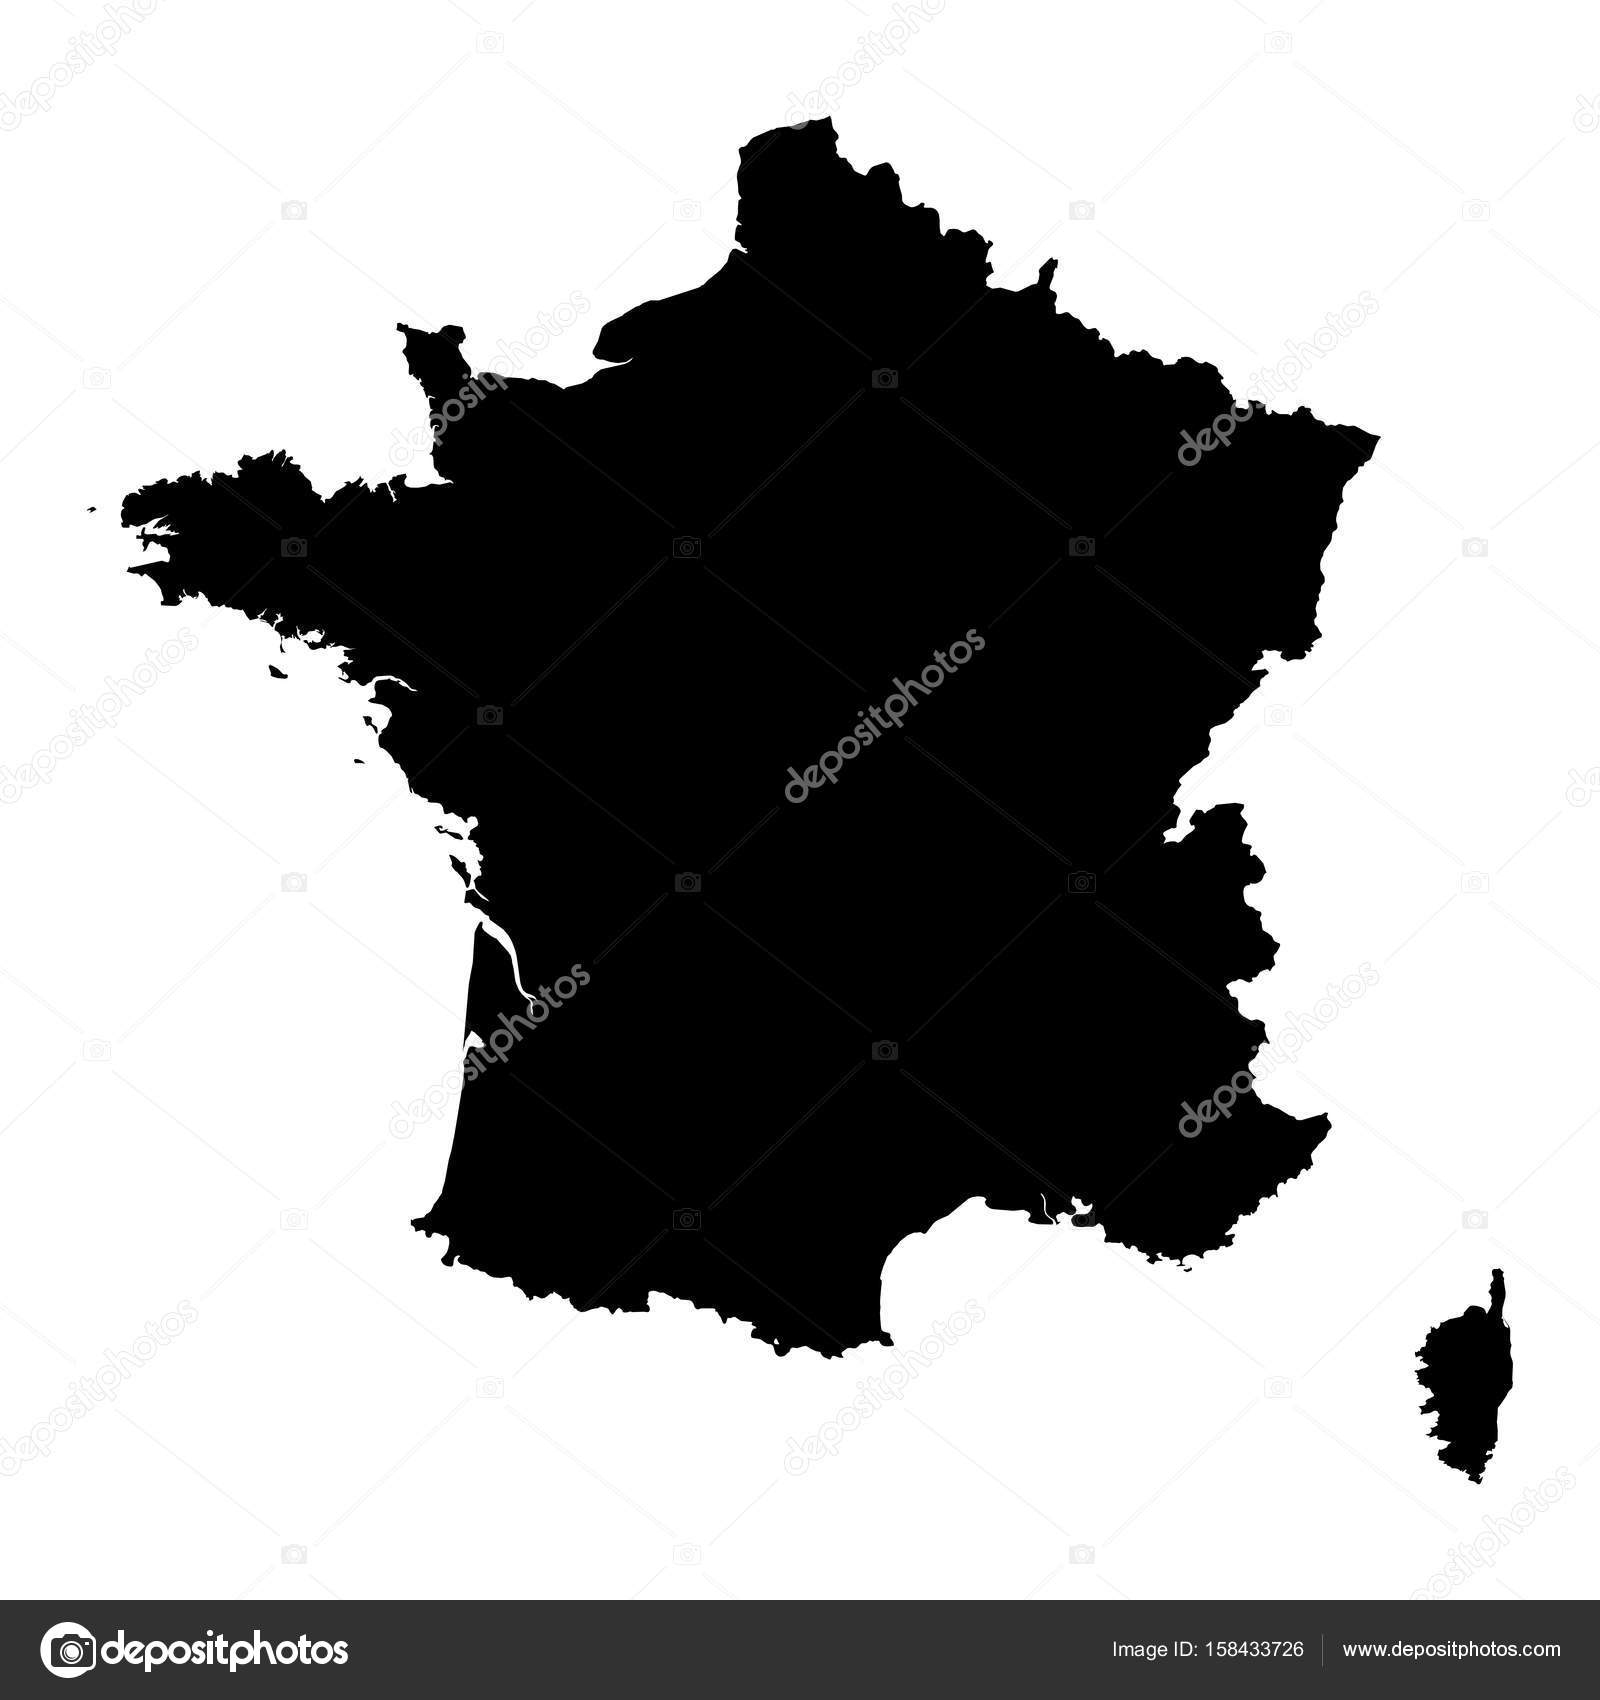 France Black Silhouette Map Outline Isolated On White 3d